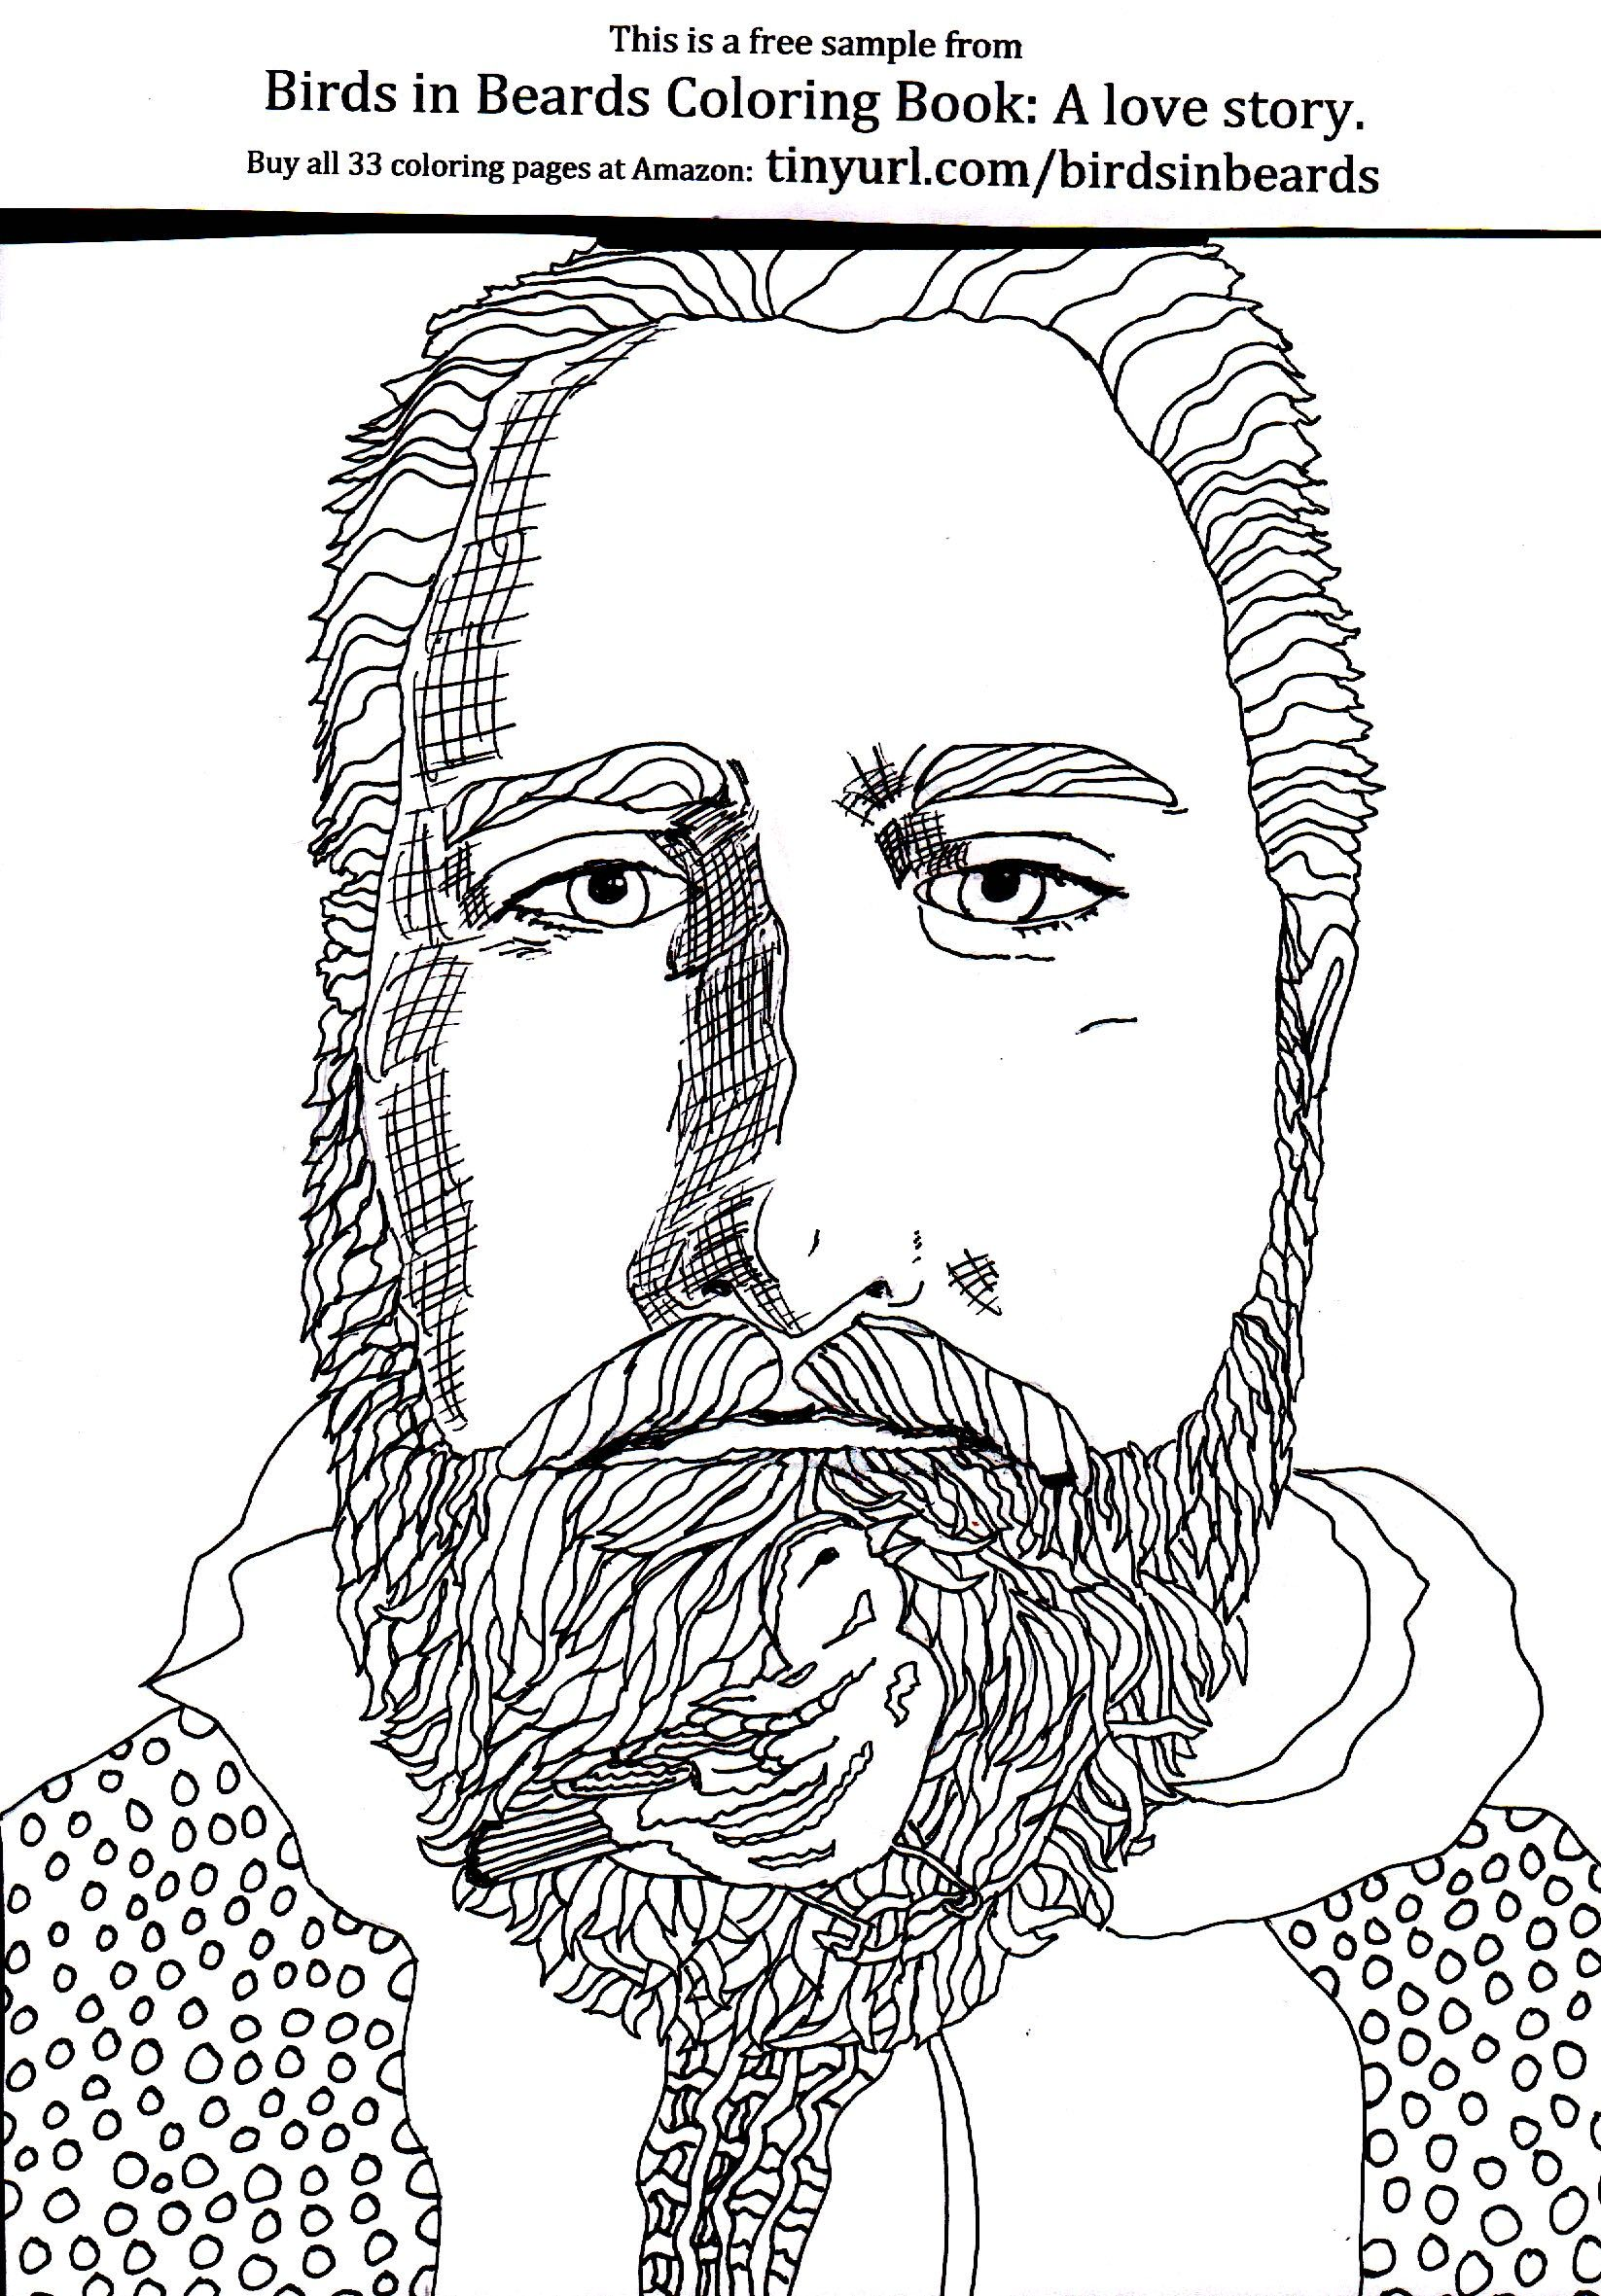 Free Coloring Page From Birds In Beards Coloring Book Https Www